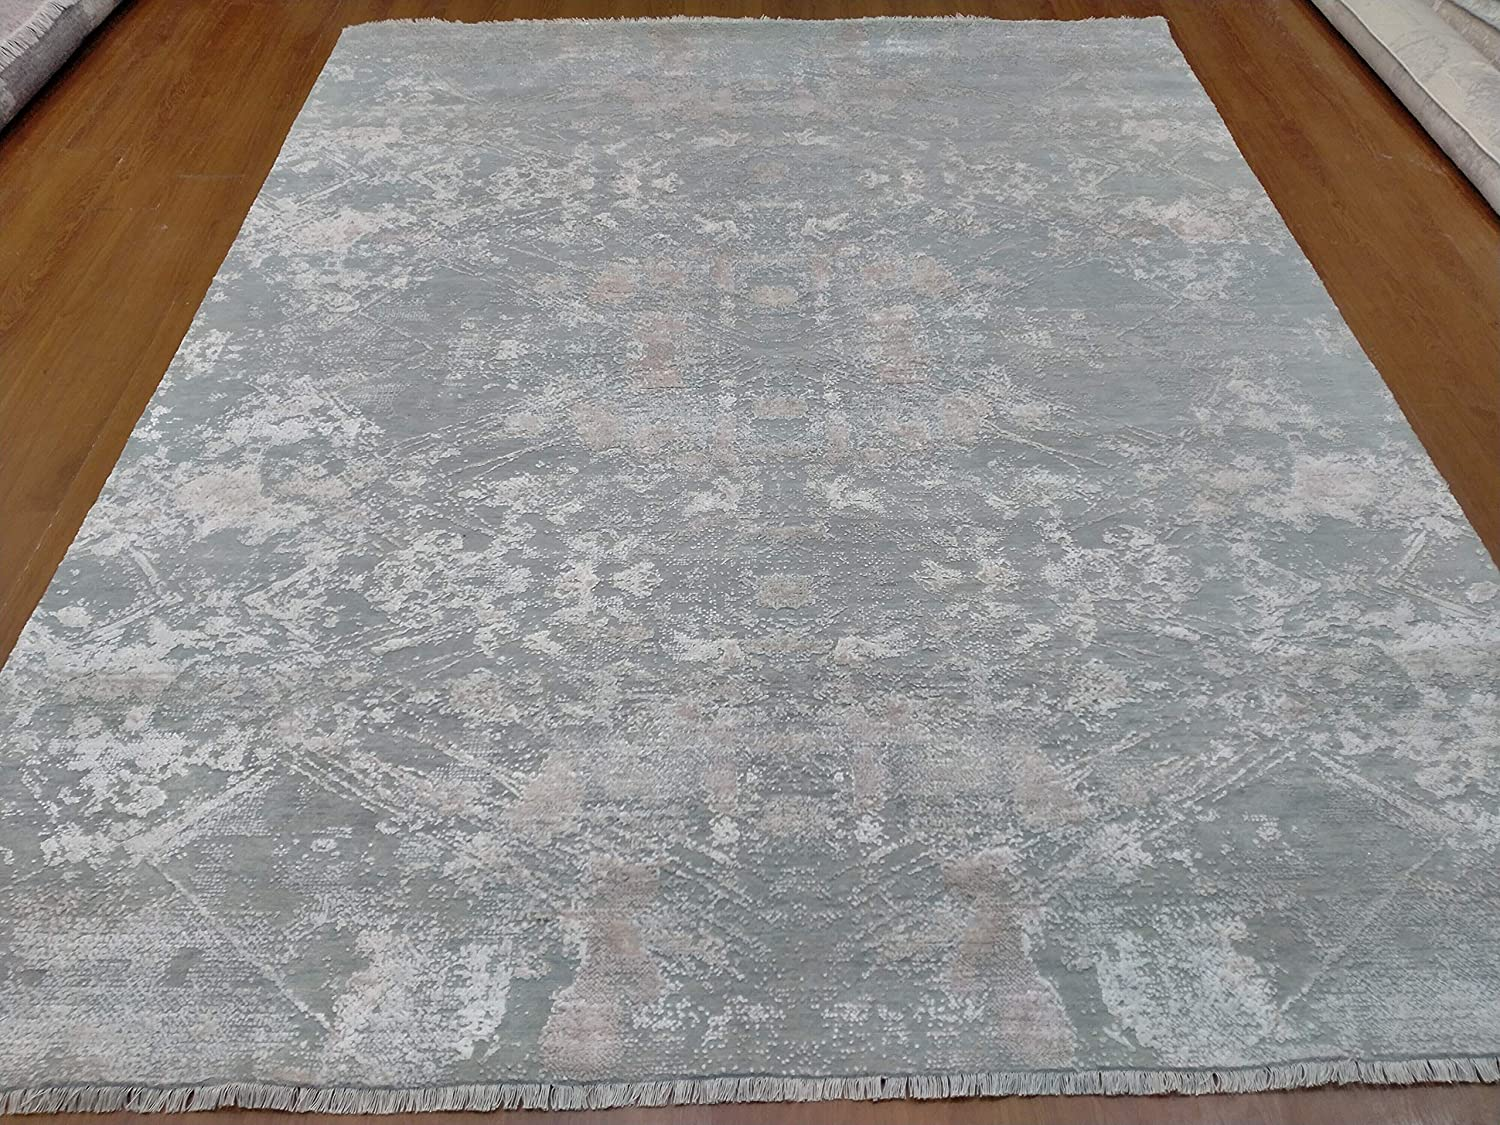 National uniform free shipping 8' x 10' Rug Modern favorite Luxury High Low Wool Tencel Hand-Knotted